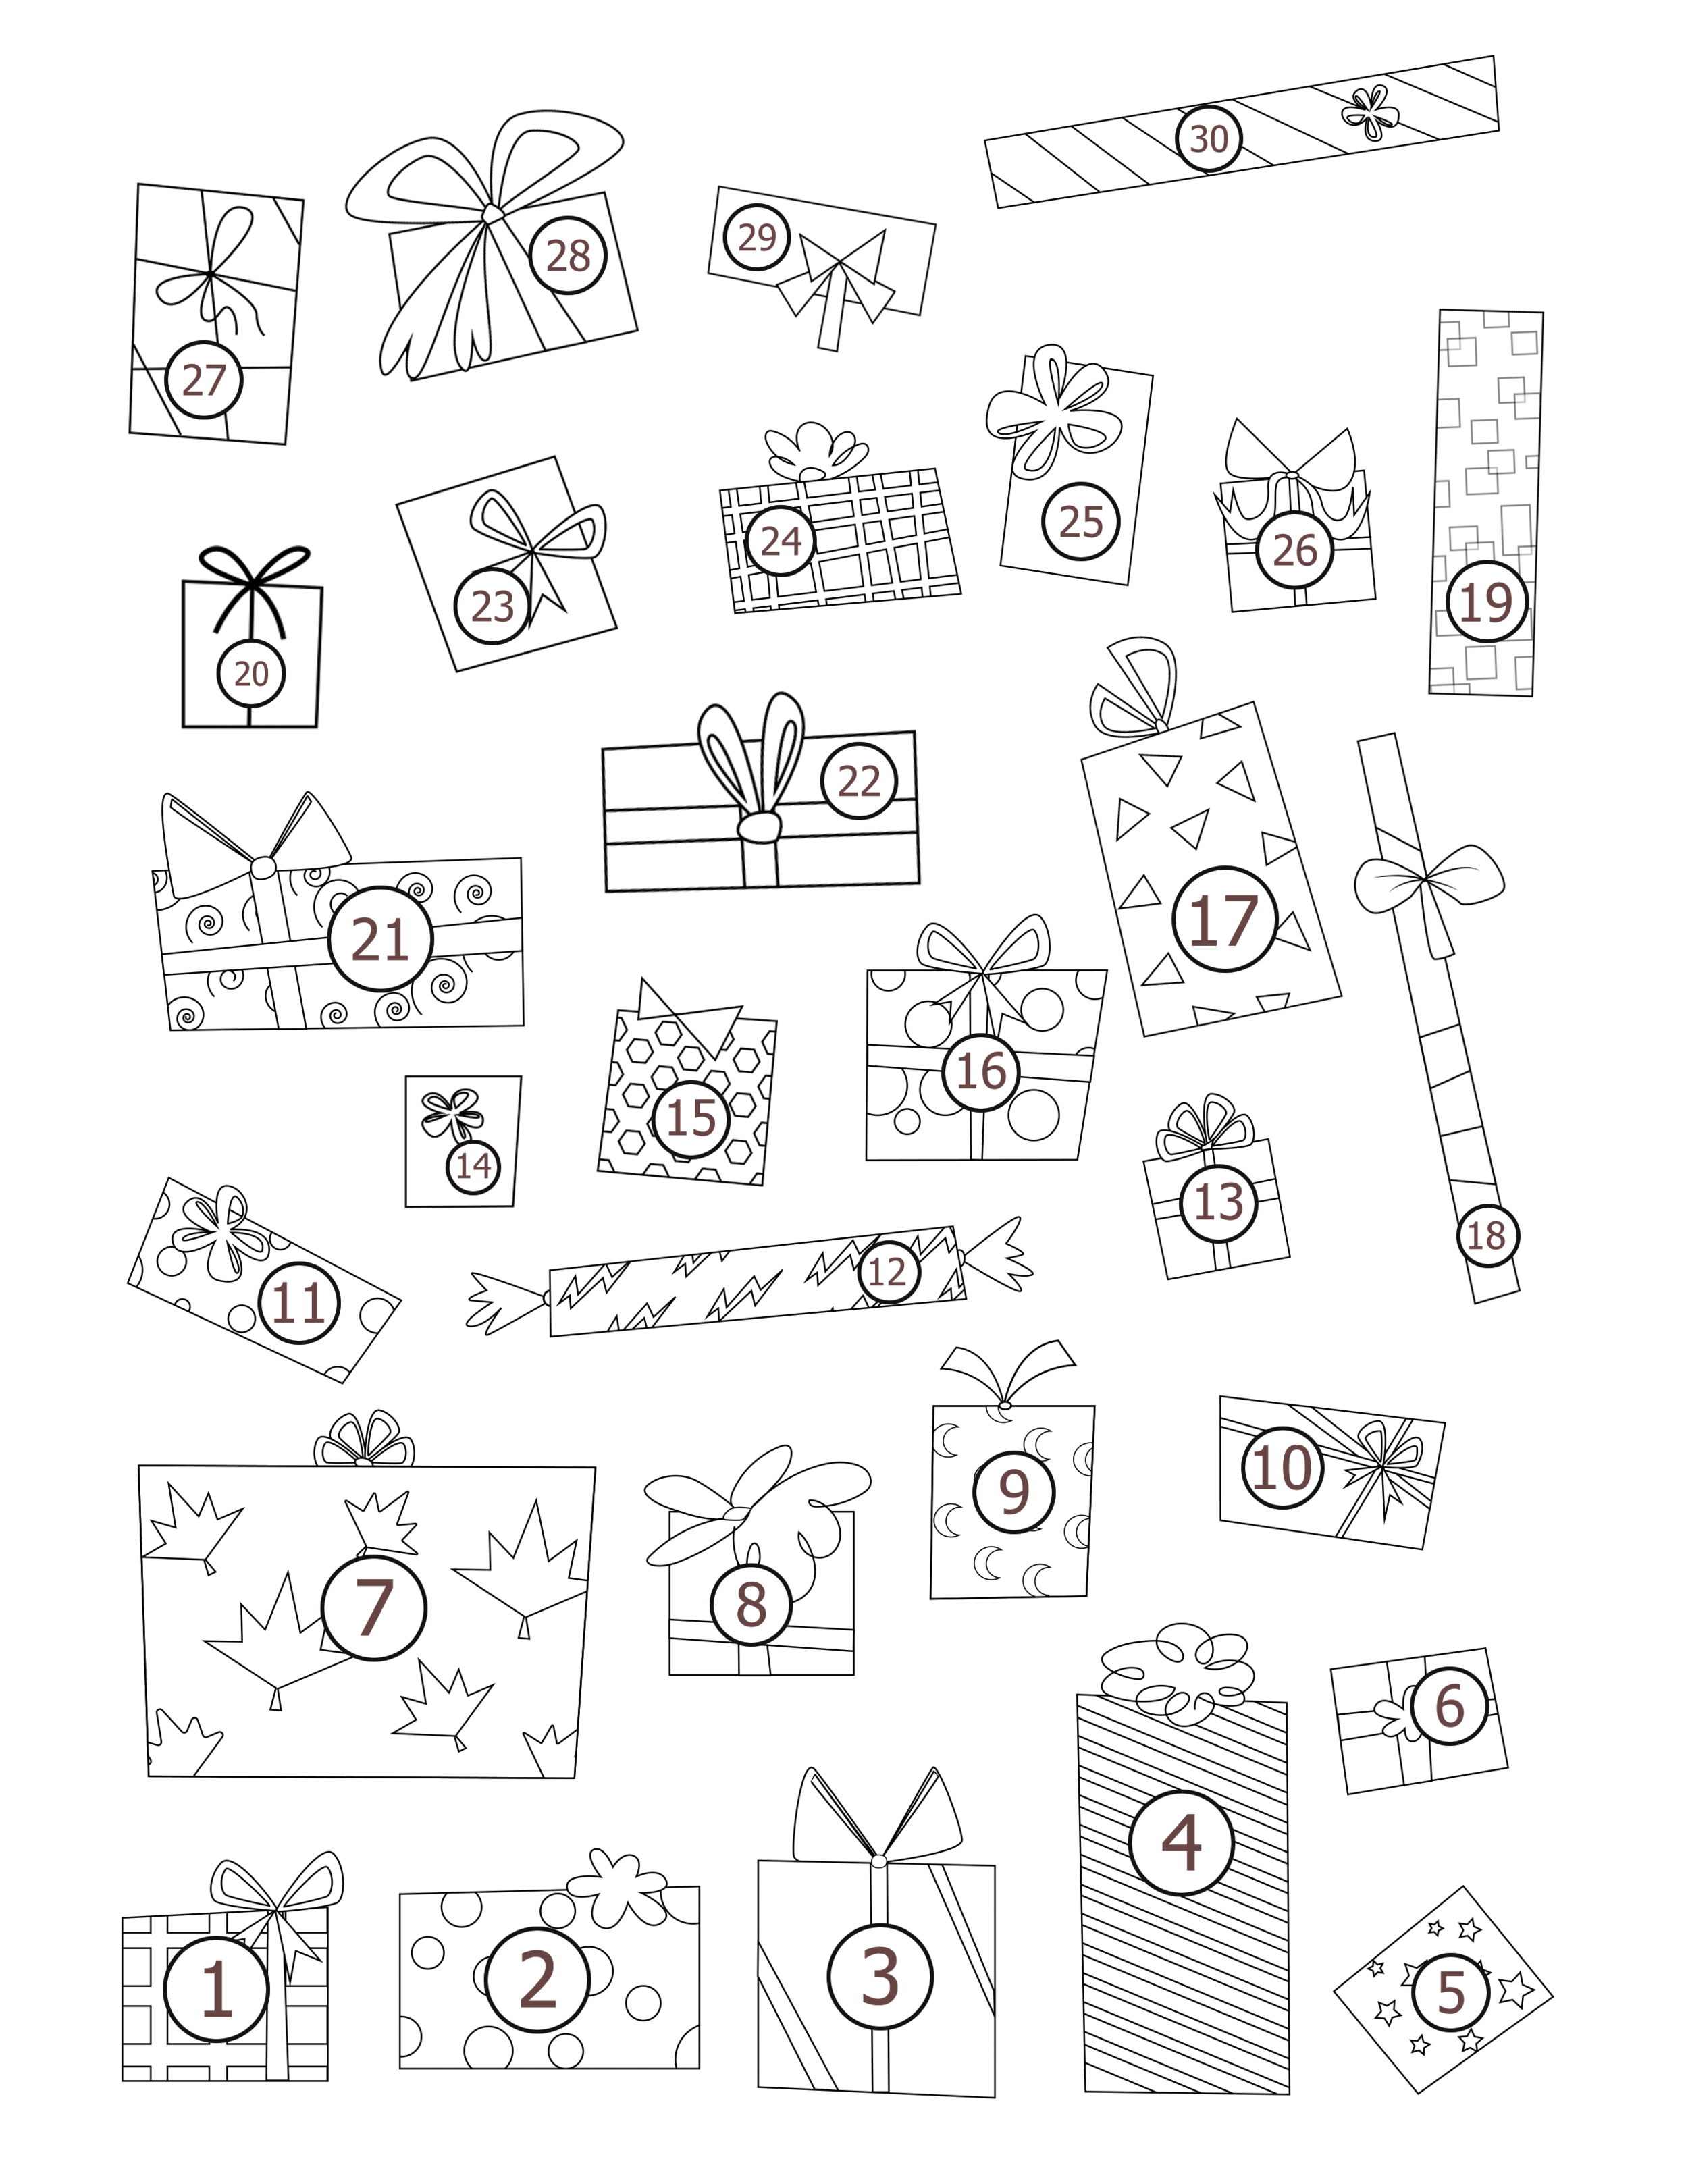 30 presents for 30 Good Deeds. Click image to print.